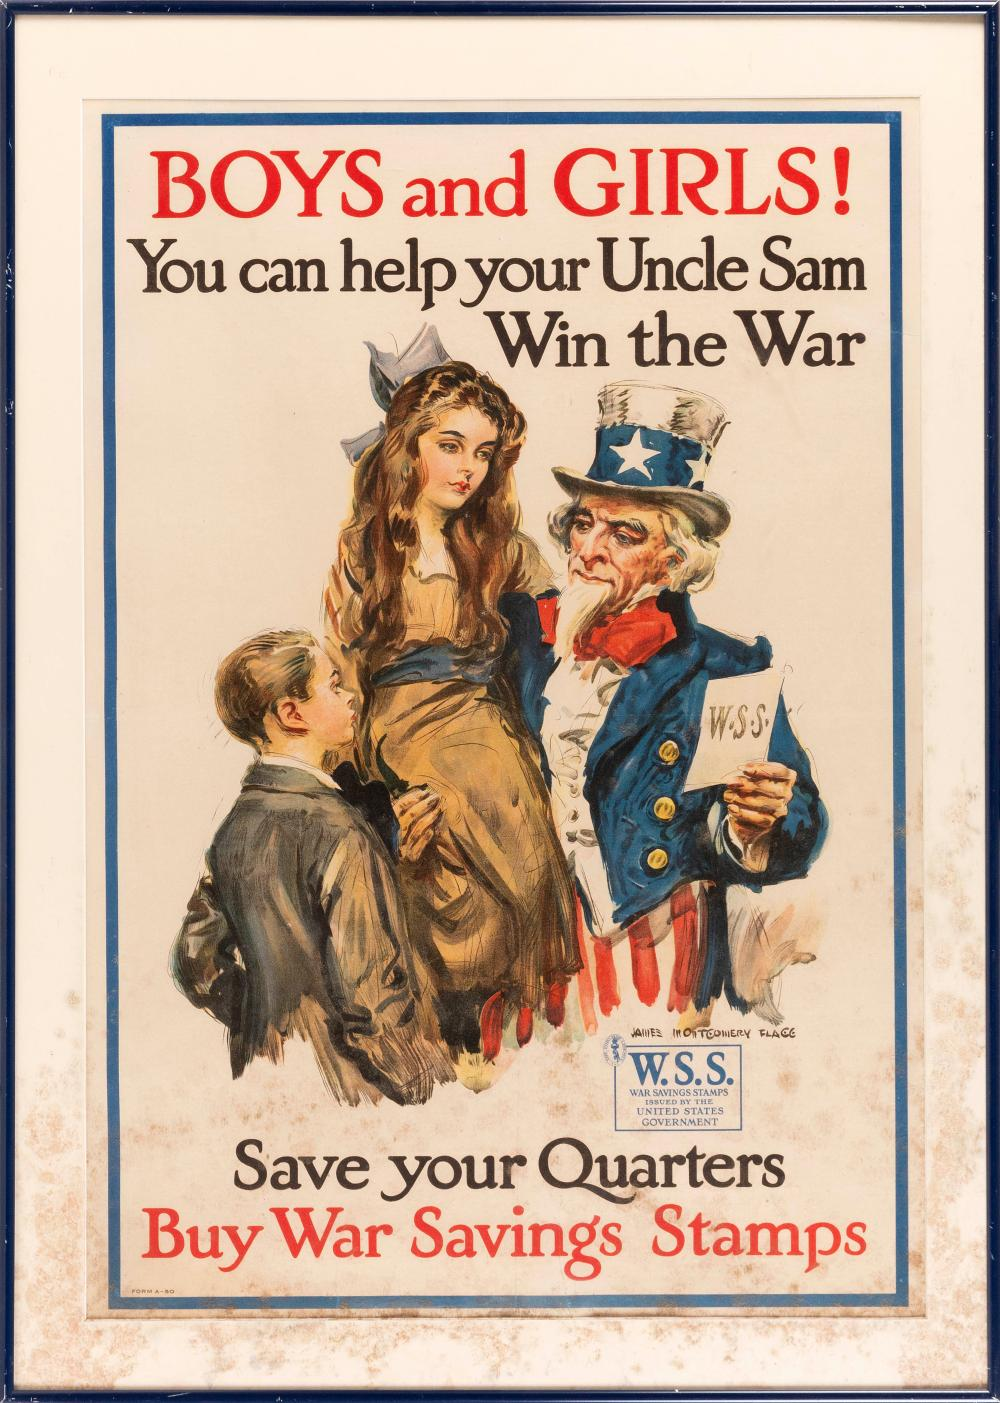 """""""BOYS AND GIRLS! YOU CAN HELP YOUR UNCLE SAM WIN THE WAR SAVE YOUR QUARTERS BUY WAR SAVINGS STAMPS"""" WORLD WAR I POSTER By James Mont..."""